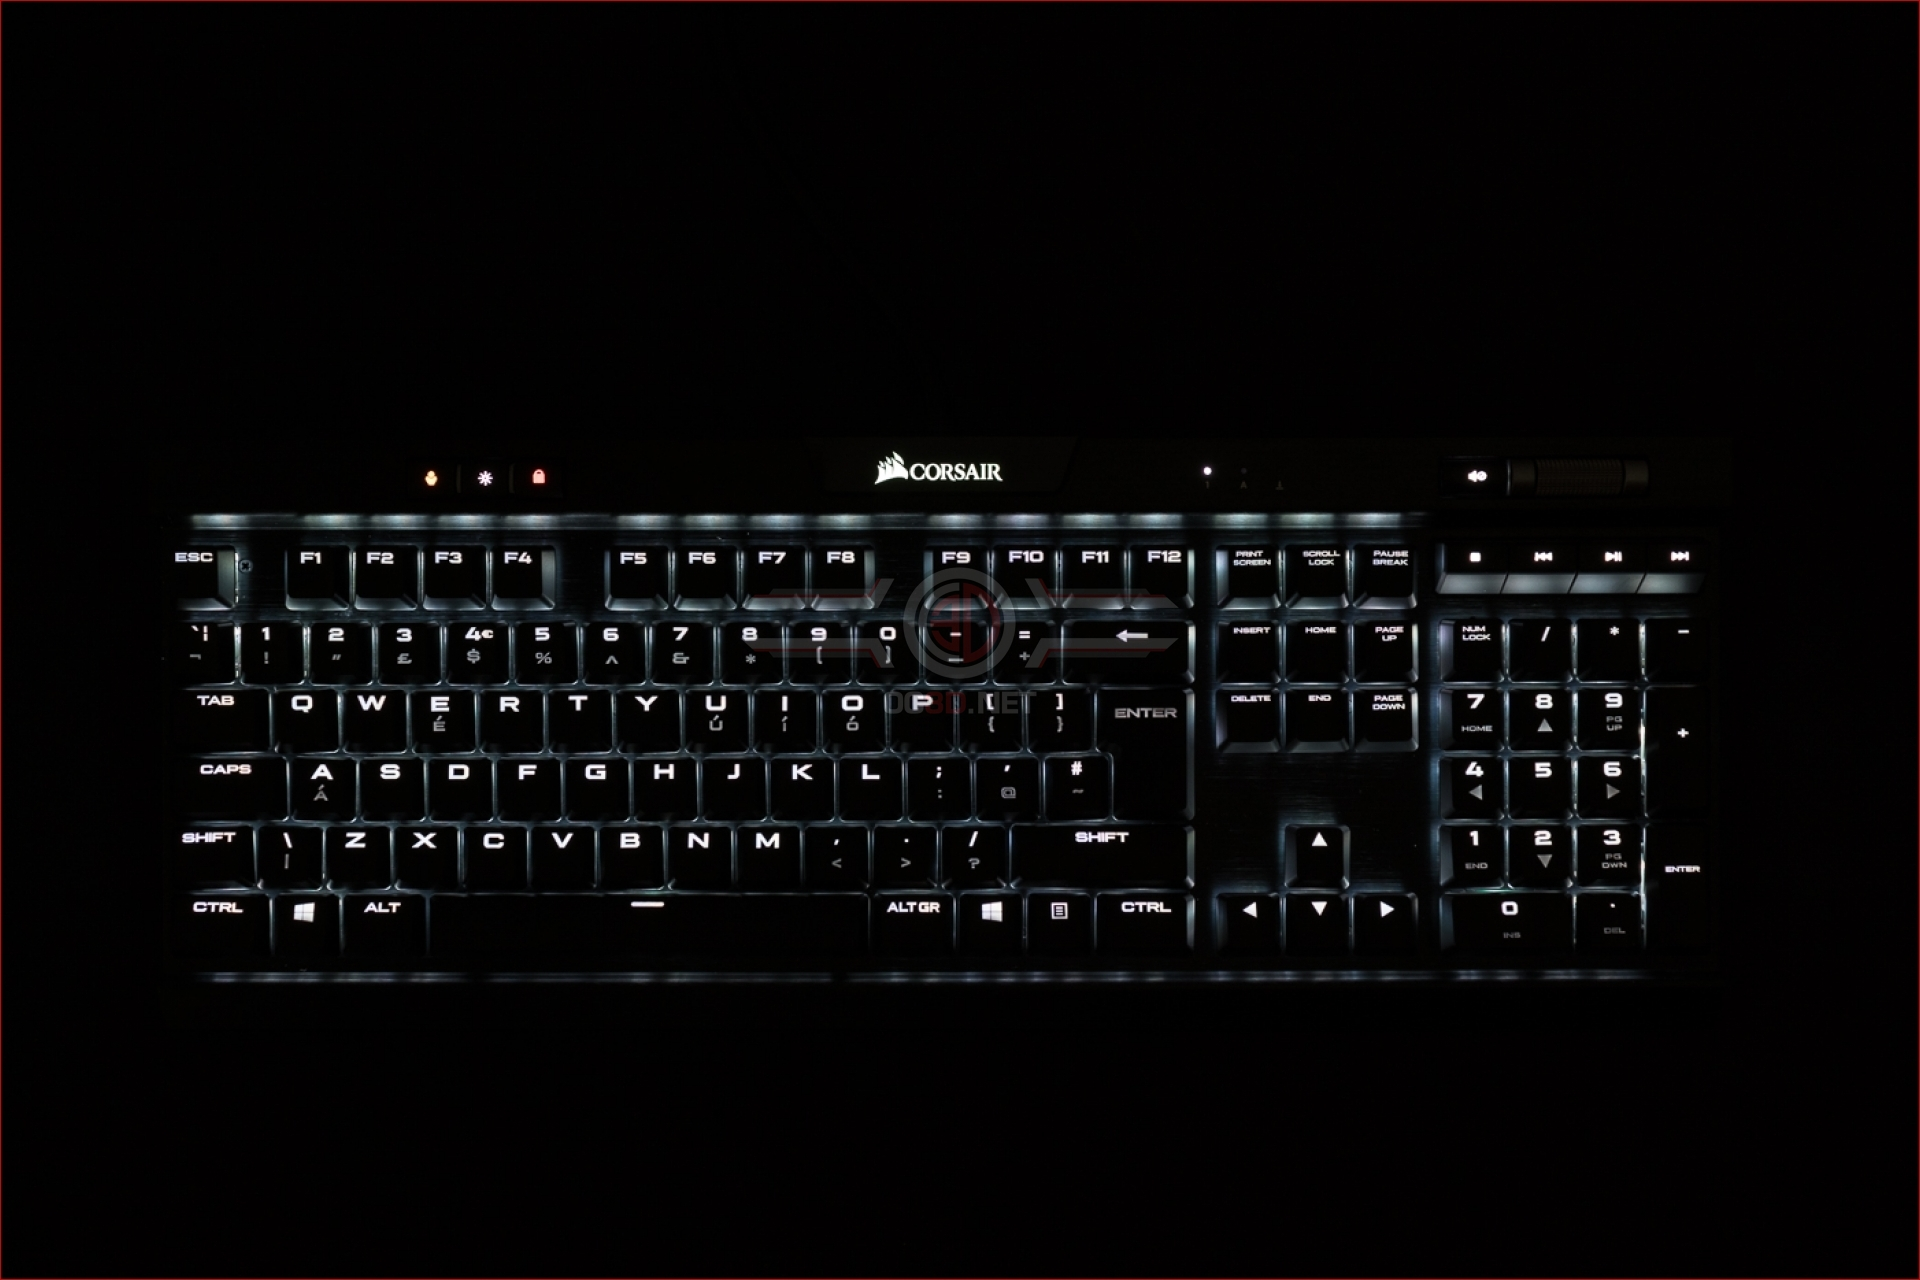 Corsair K70 RGB Mk 2 Low Profile Keyboard Review | Lighting | Input